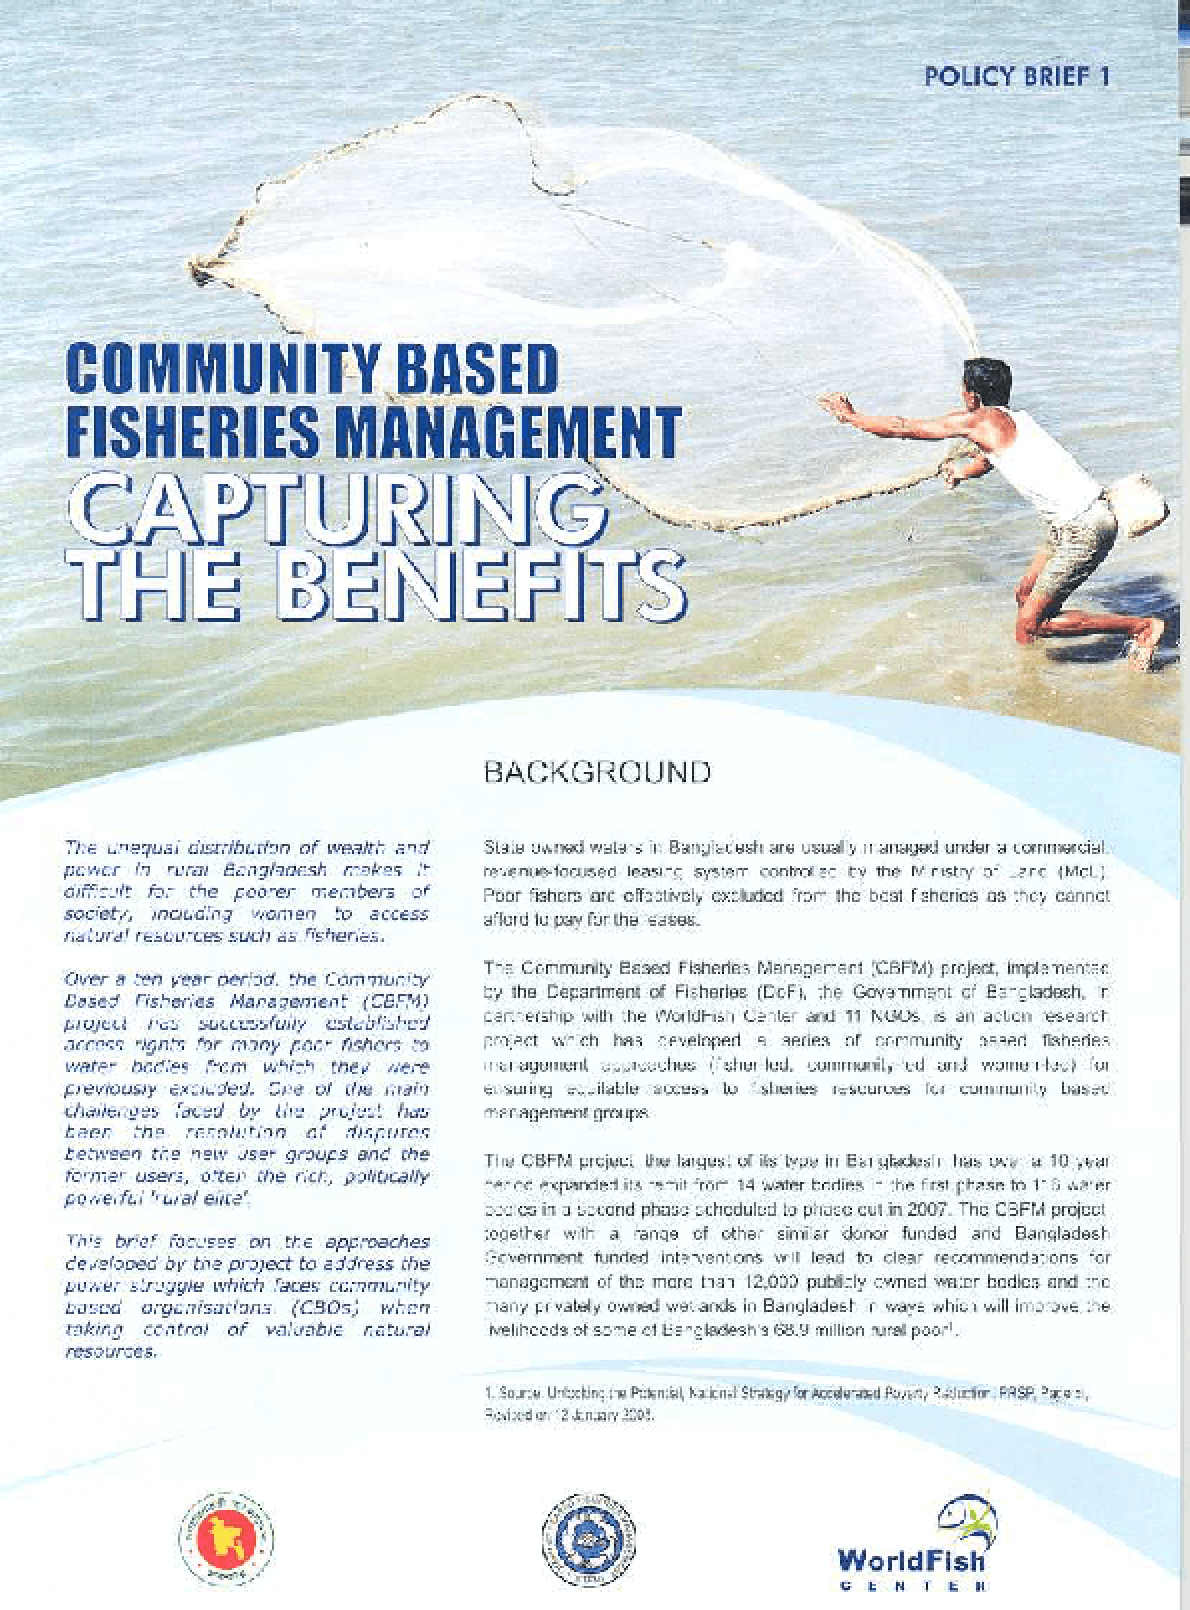 Community Based Fisheries Management: Capturing the Benefits